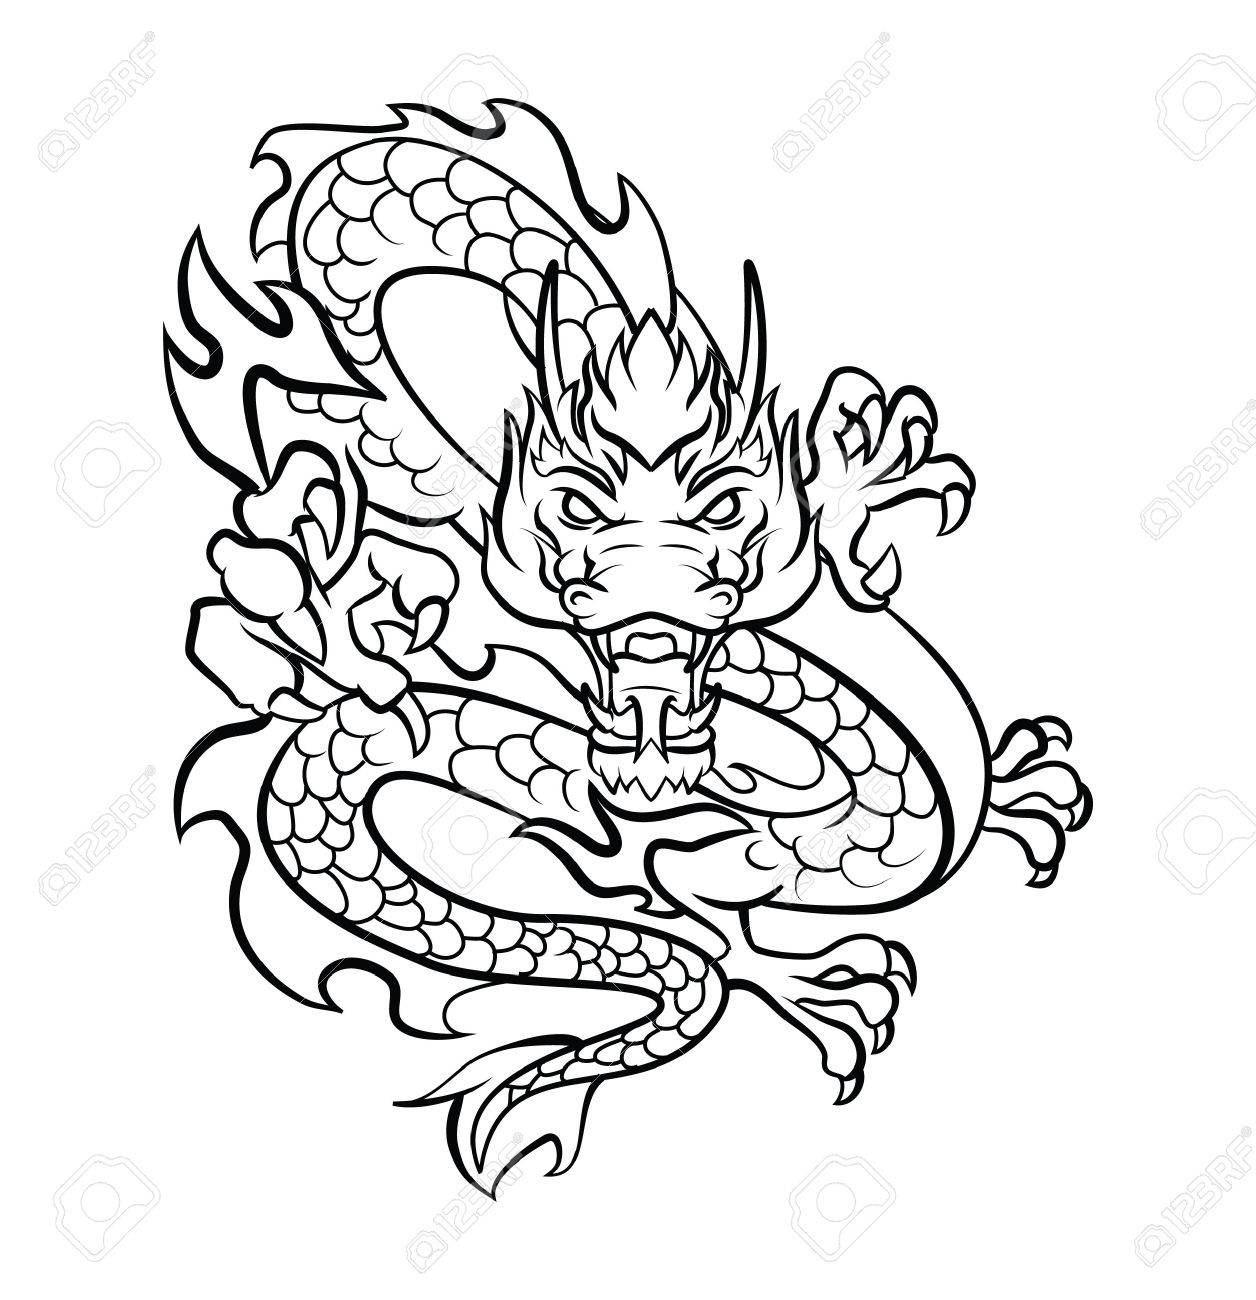 Dragon Tattoo Vector Illustration Royalty Free Cliparts Vectors And Stock Illustration Image 31711974 Temporary tattoos, stickers, apparel design, cards, wedding invitations, greeting cards, packaging design, logos. dragon tattoo vector illustration